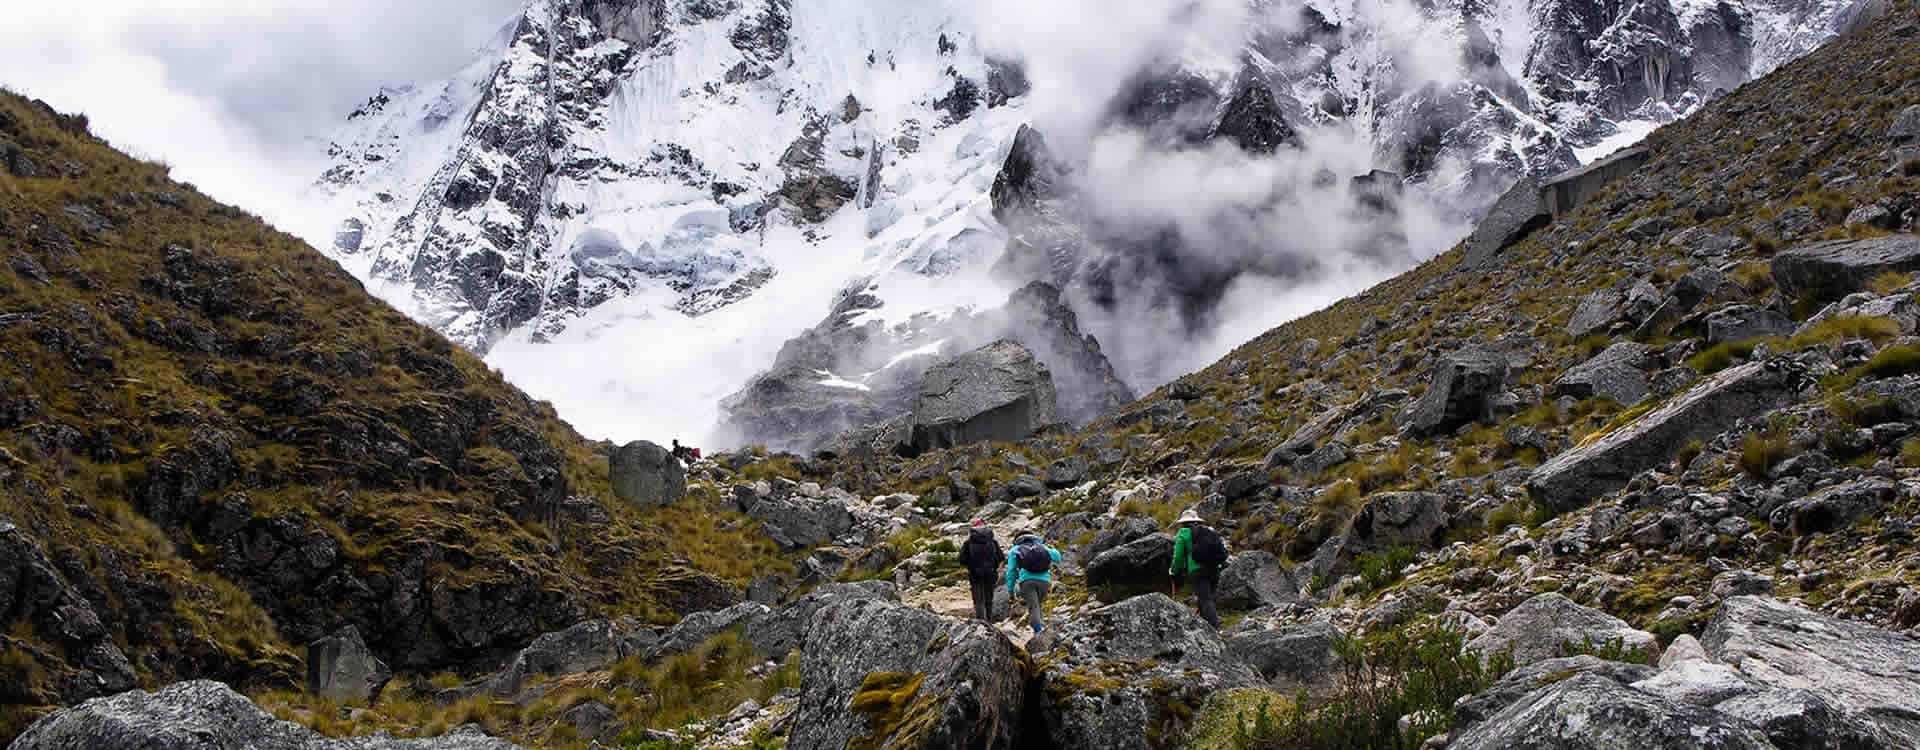 Salkantay Trek to Machu Picchu 8 Days